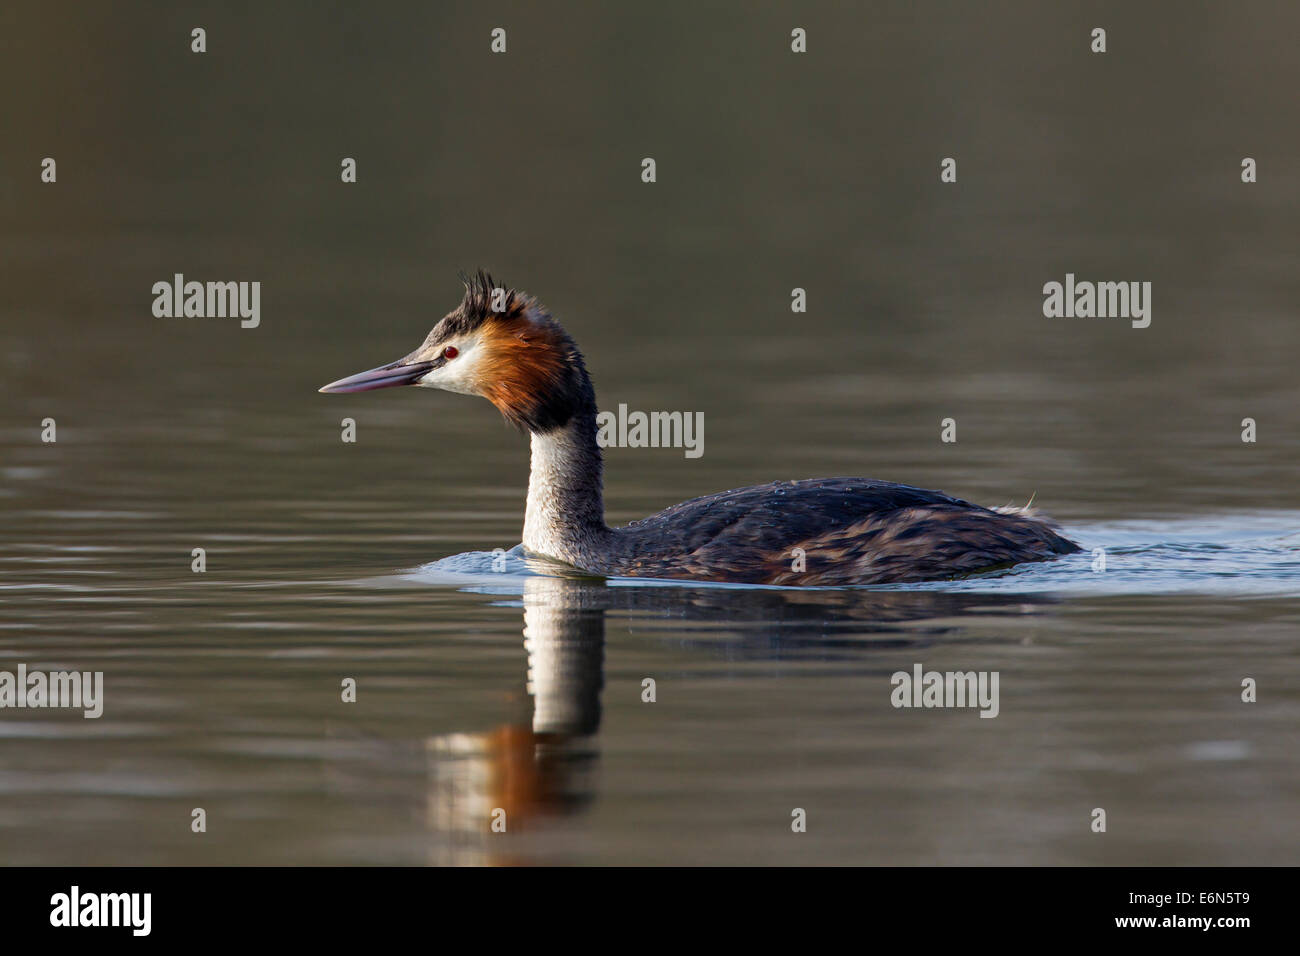 Great crested grebe (Podiceps cristatus) swimming in lake - Stock Image